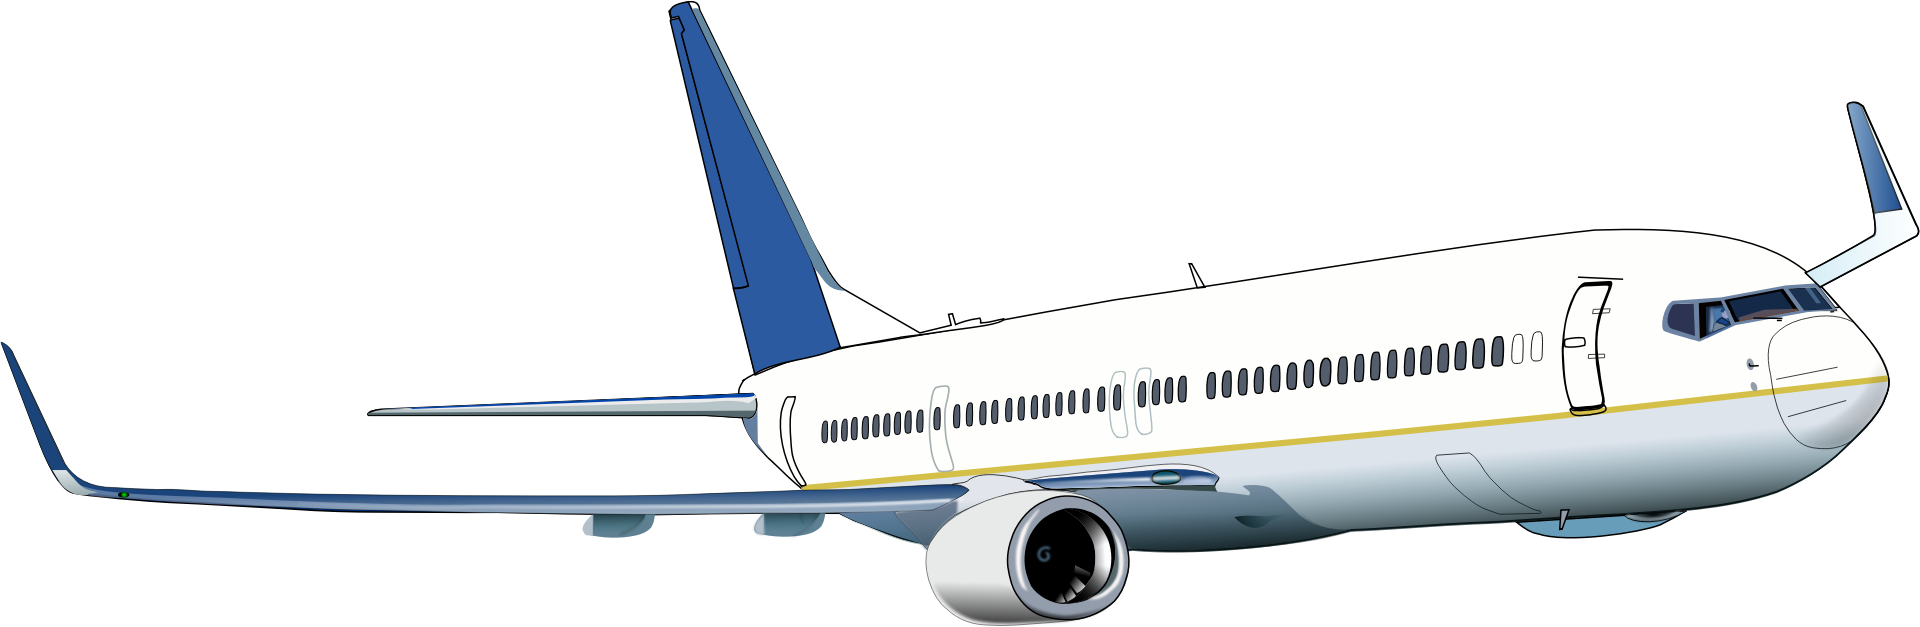 Boeing 737 Clipart